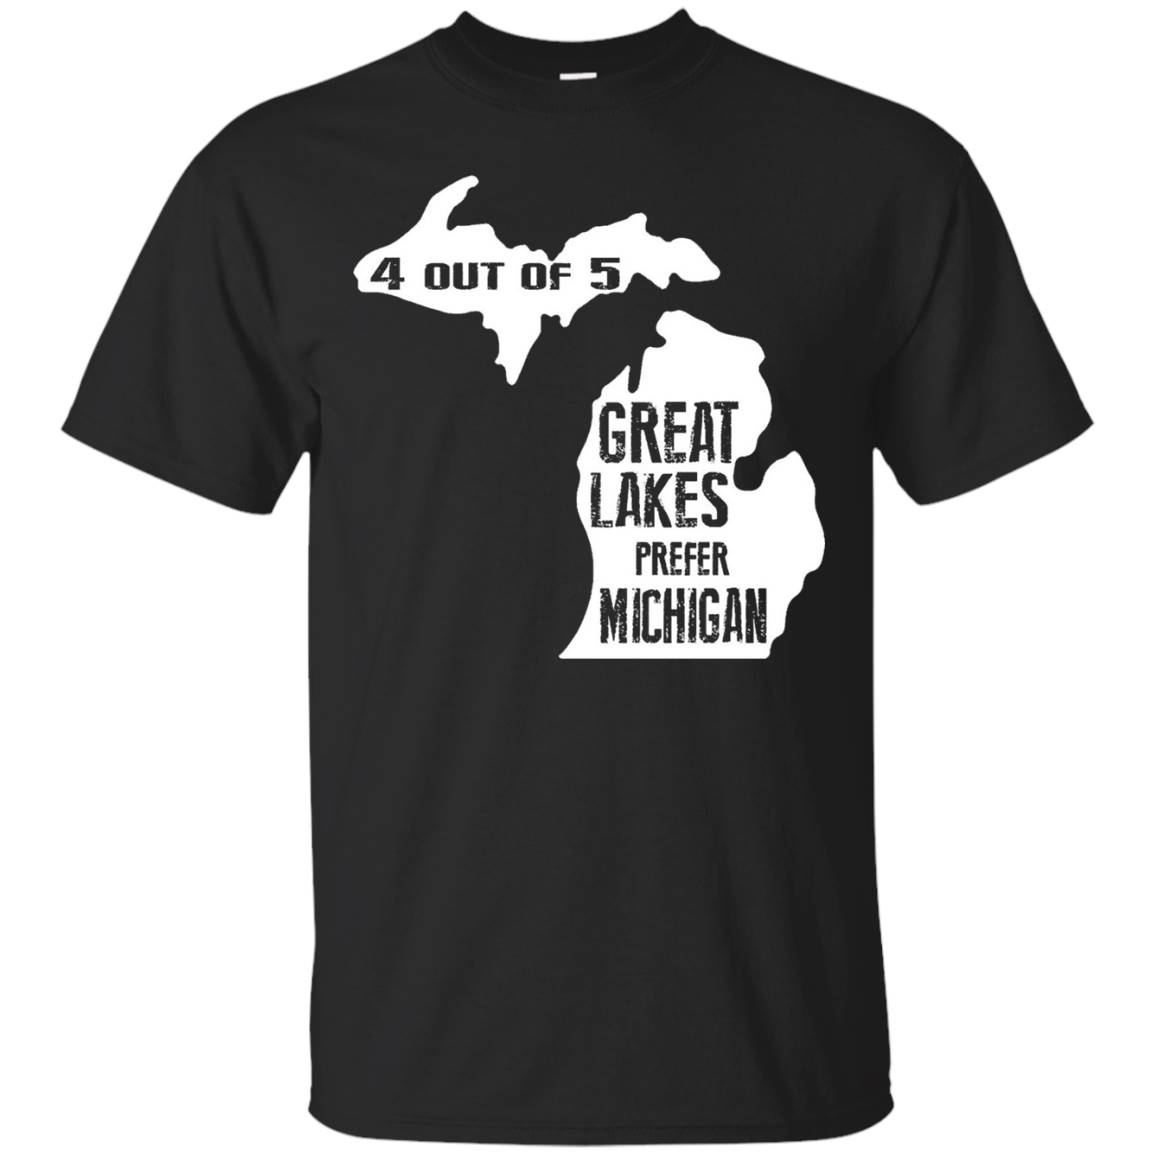 4 out of 5 Great Lakes Prefer Michigan Shirt